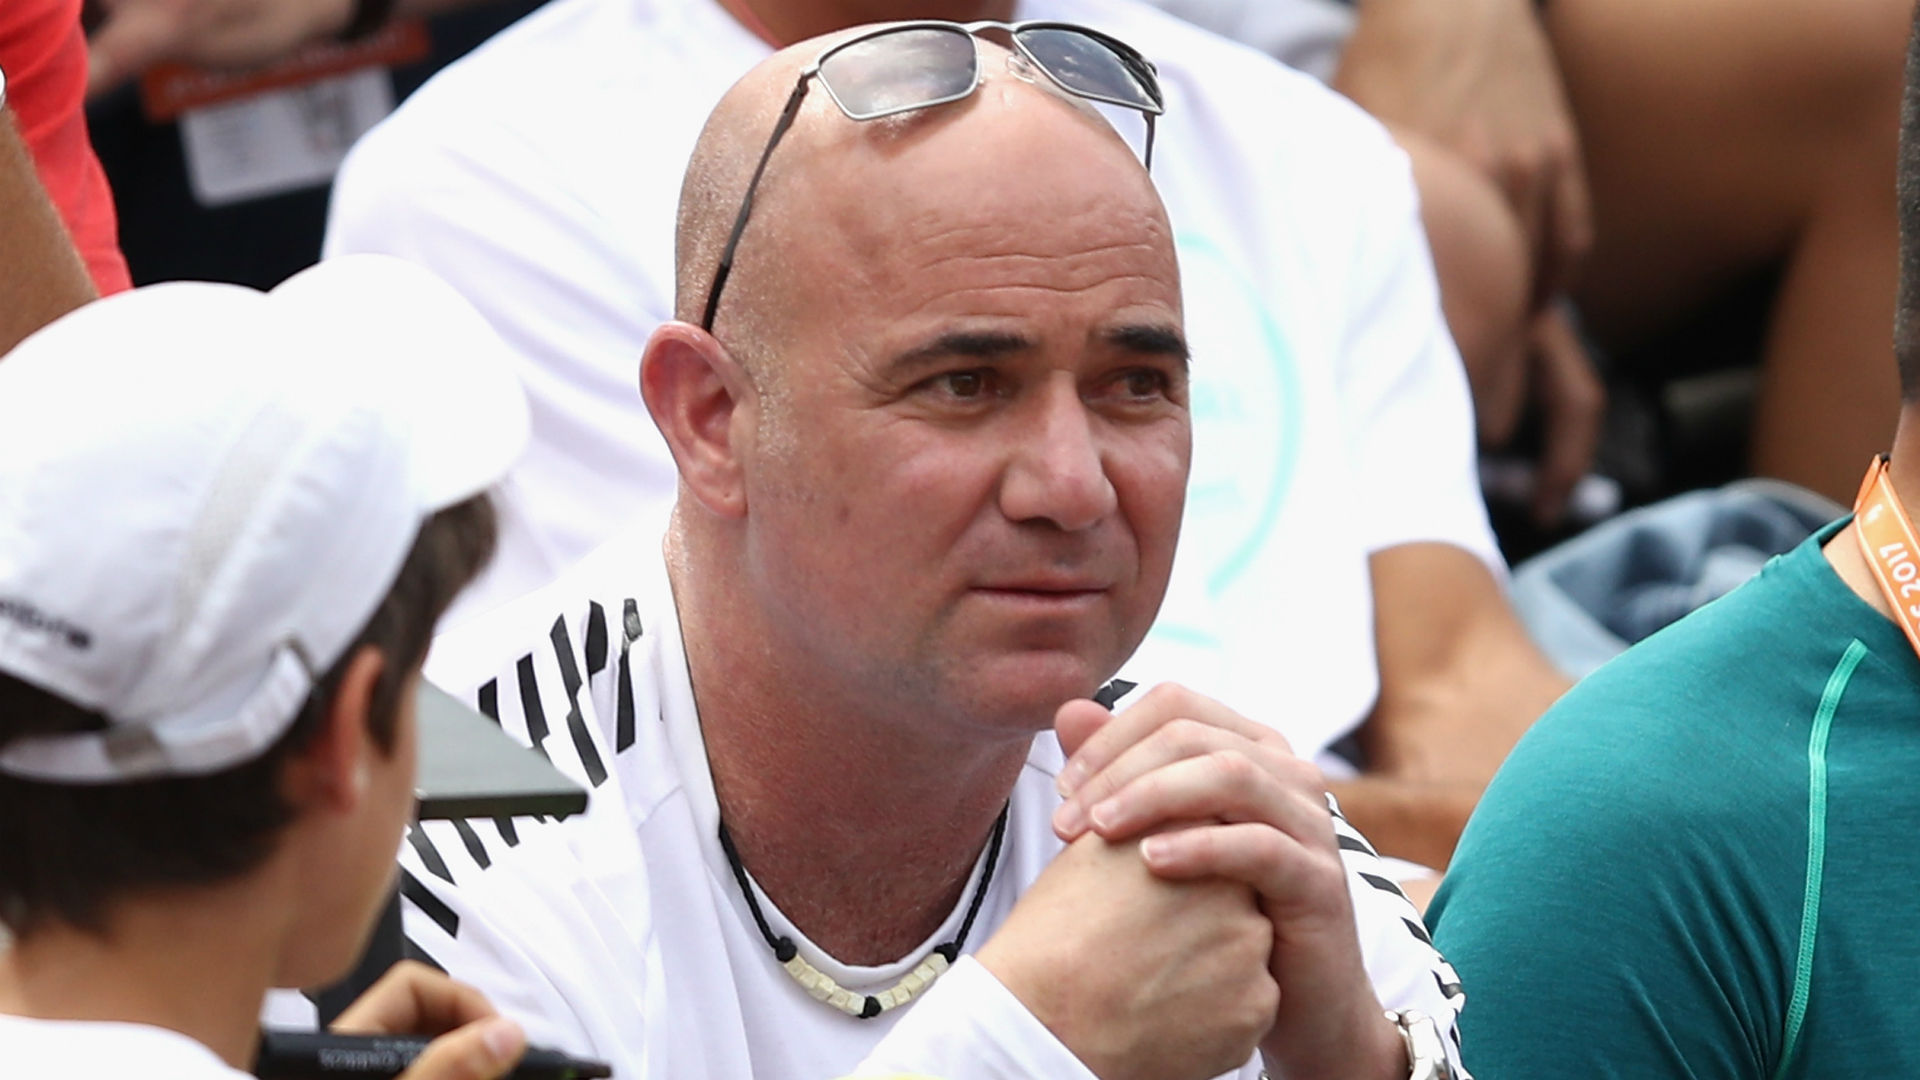 andre agassi - photo #47